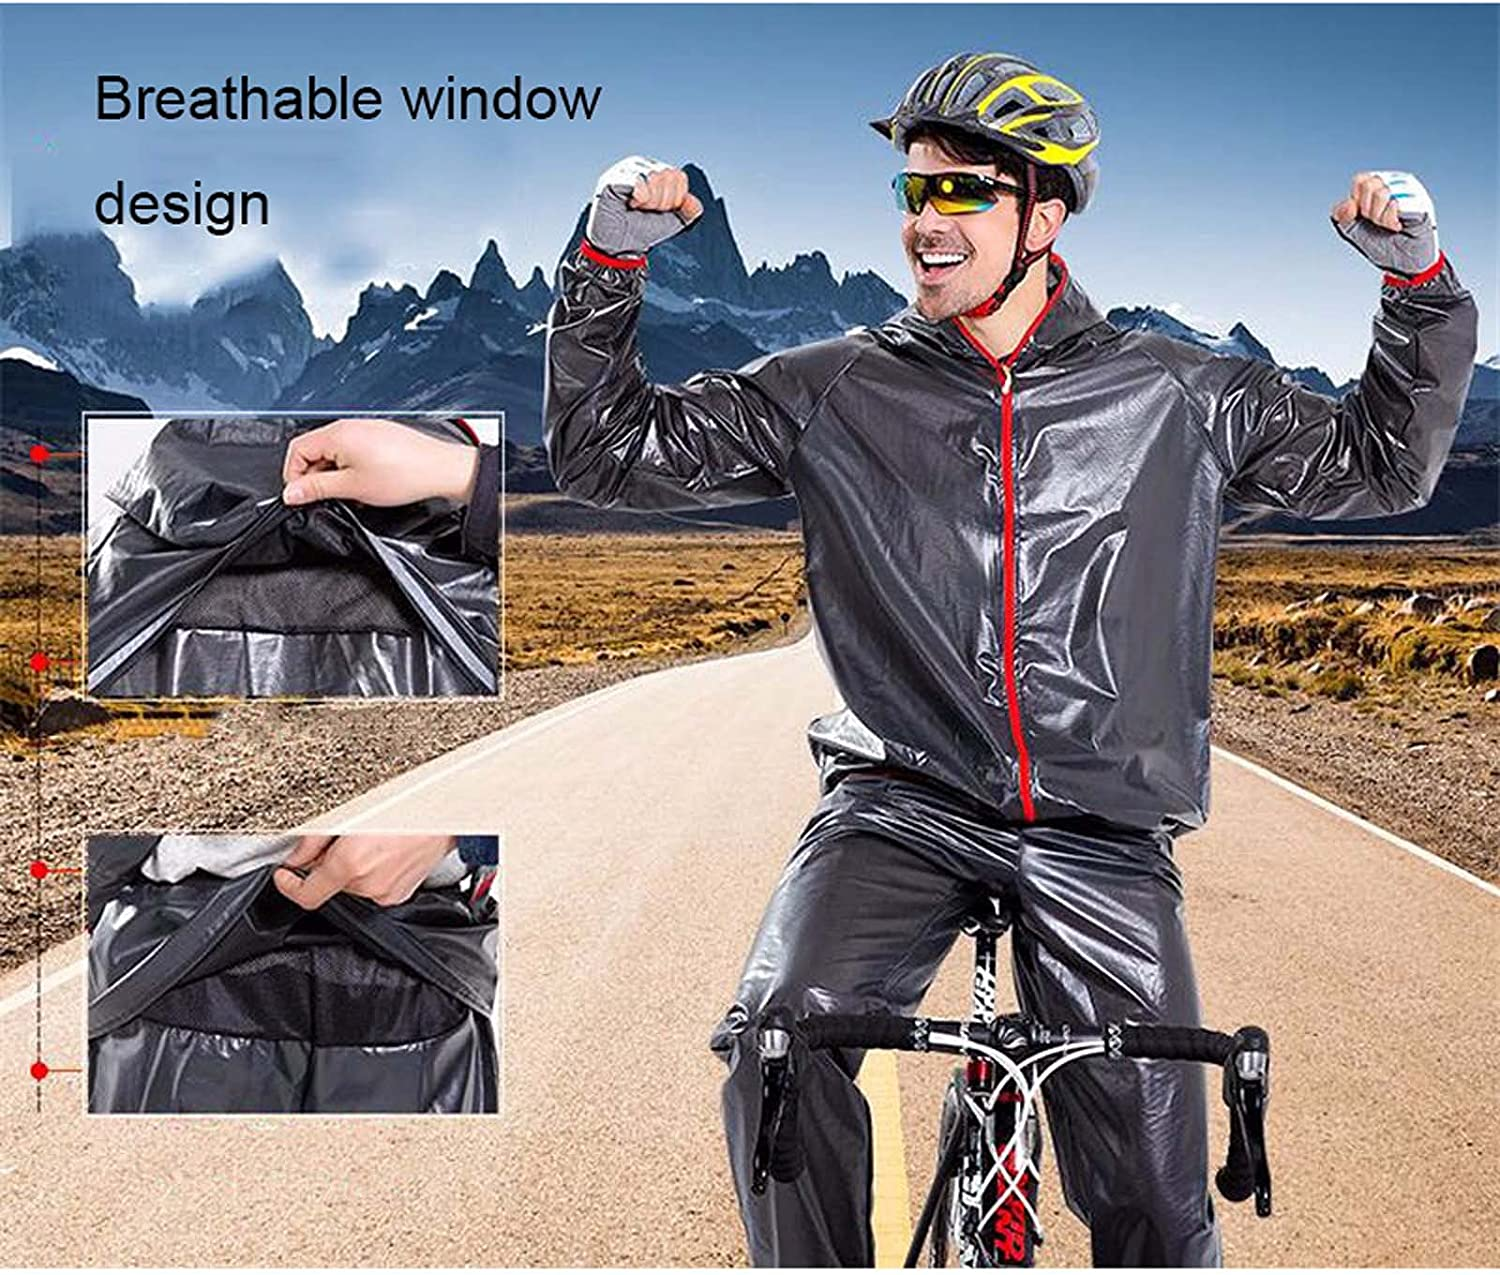 FHGH Men's Split Raincoat for Cycling, Portable Raincoat and Trousers Set, for Riding, Hiking and Traveling,D,Medium